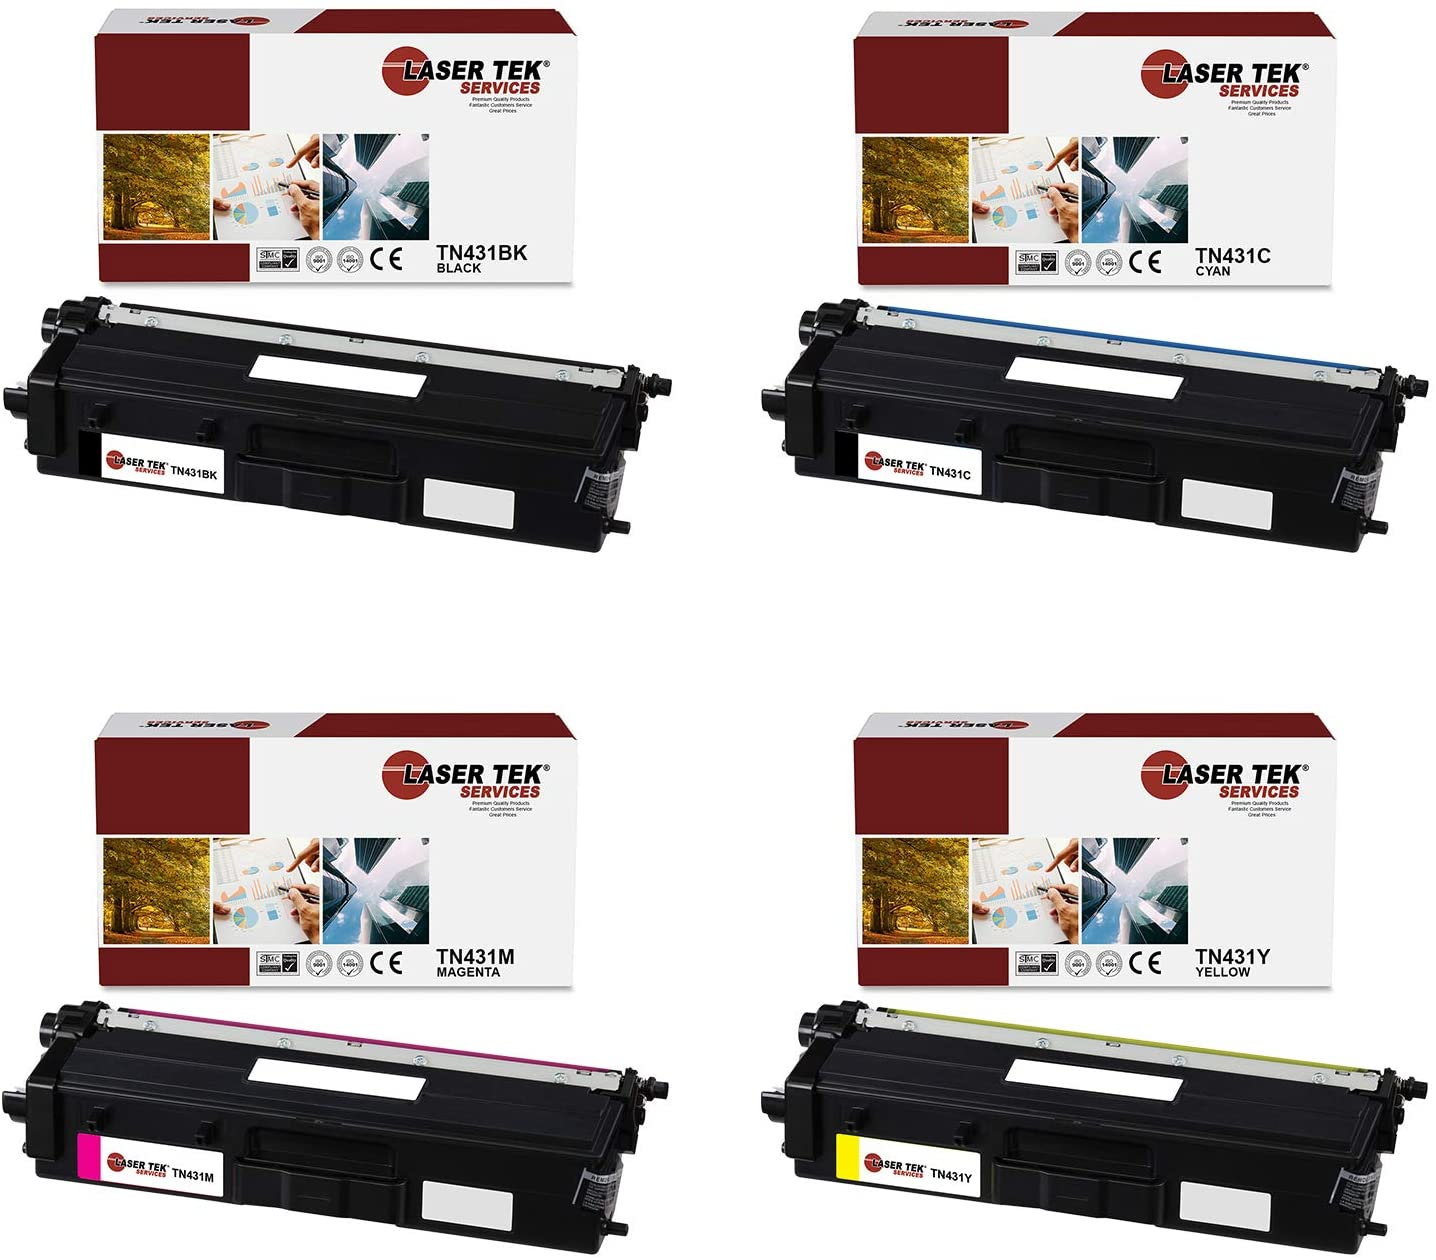 Laser Tek Services Compatible Toner Cartridge Replacement for Brother TN-431K TN-431C TN-431M TN-431Y. (Black, Cyan, Magenta, Yellow, 4-Pack)